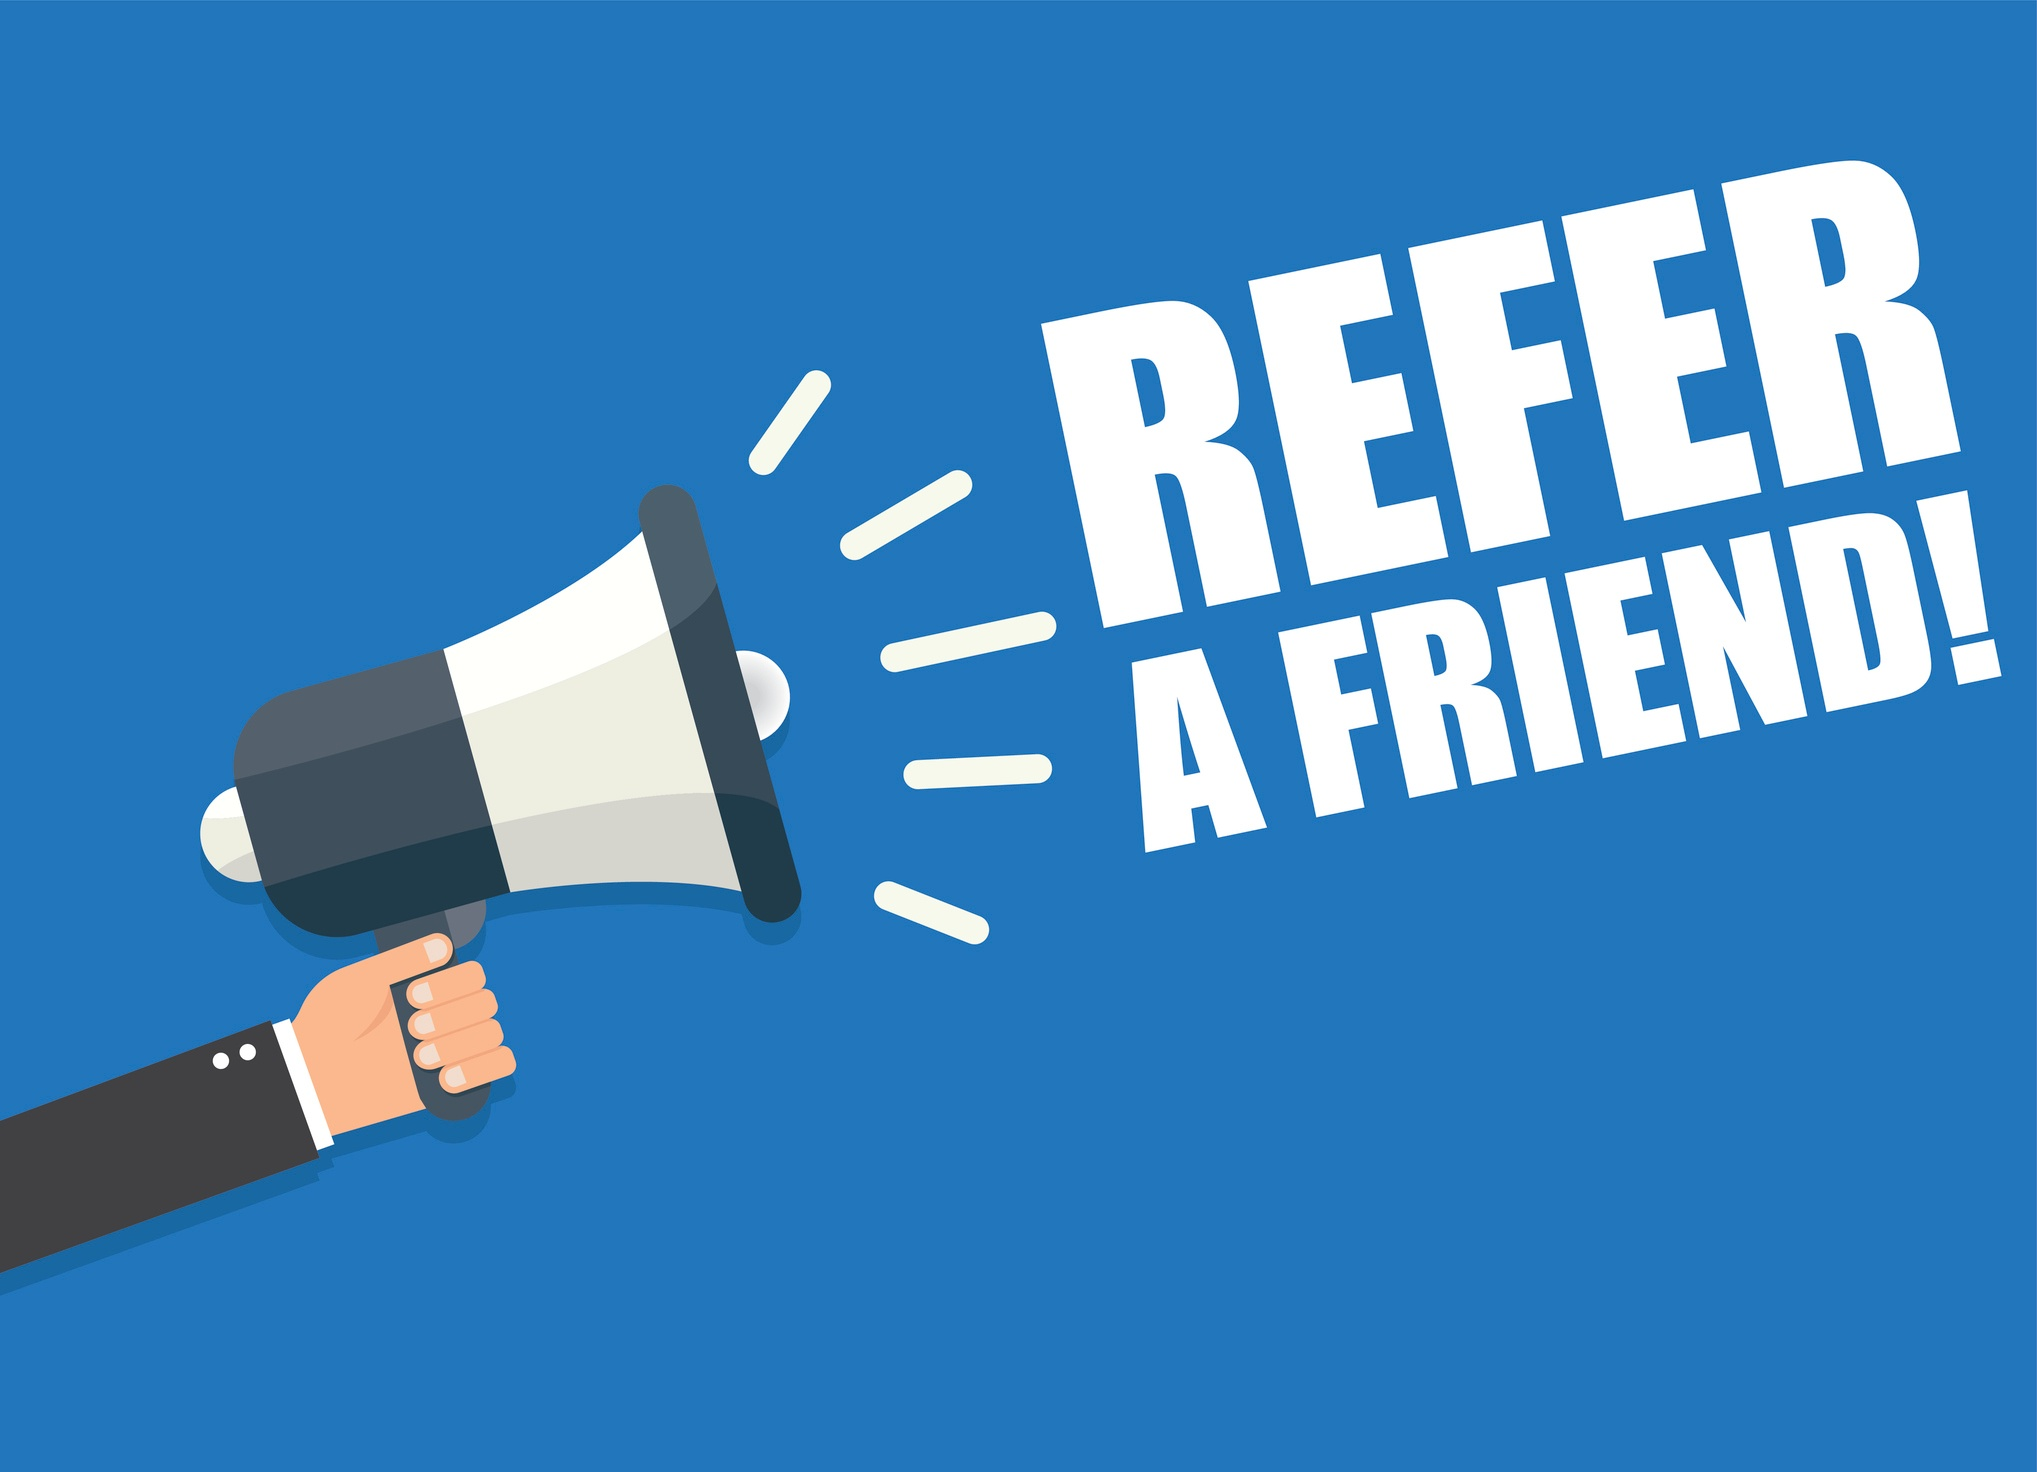 6 Tips for Getting More Sales Referrals